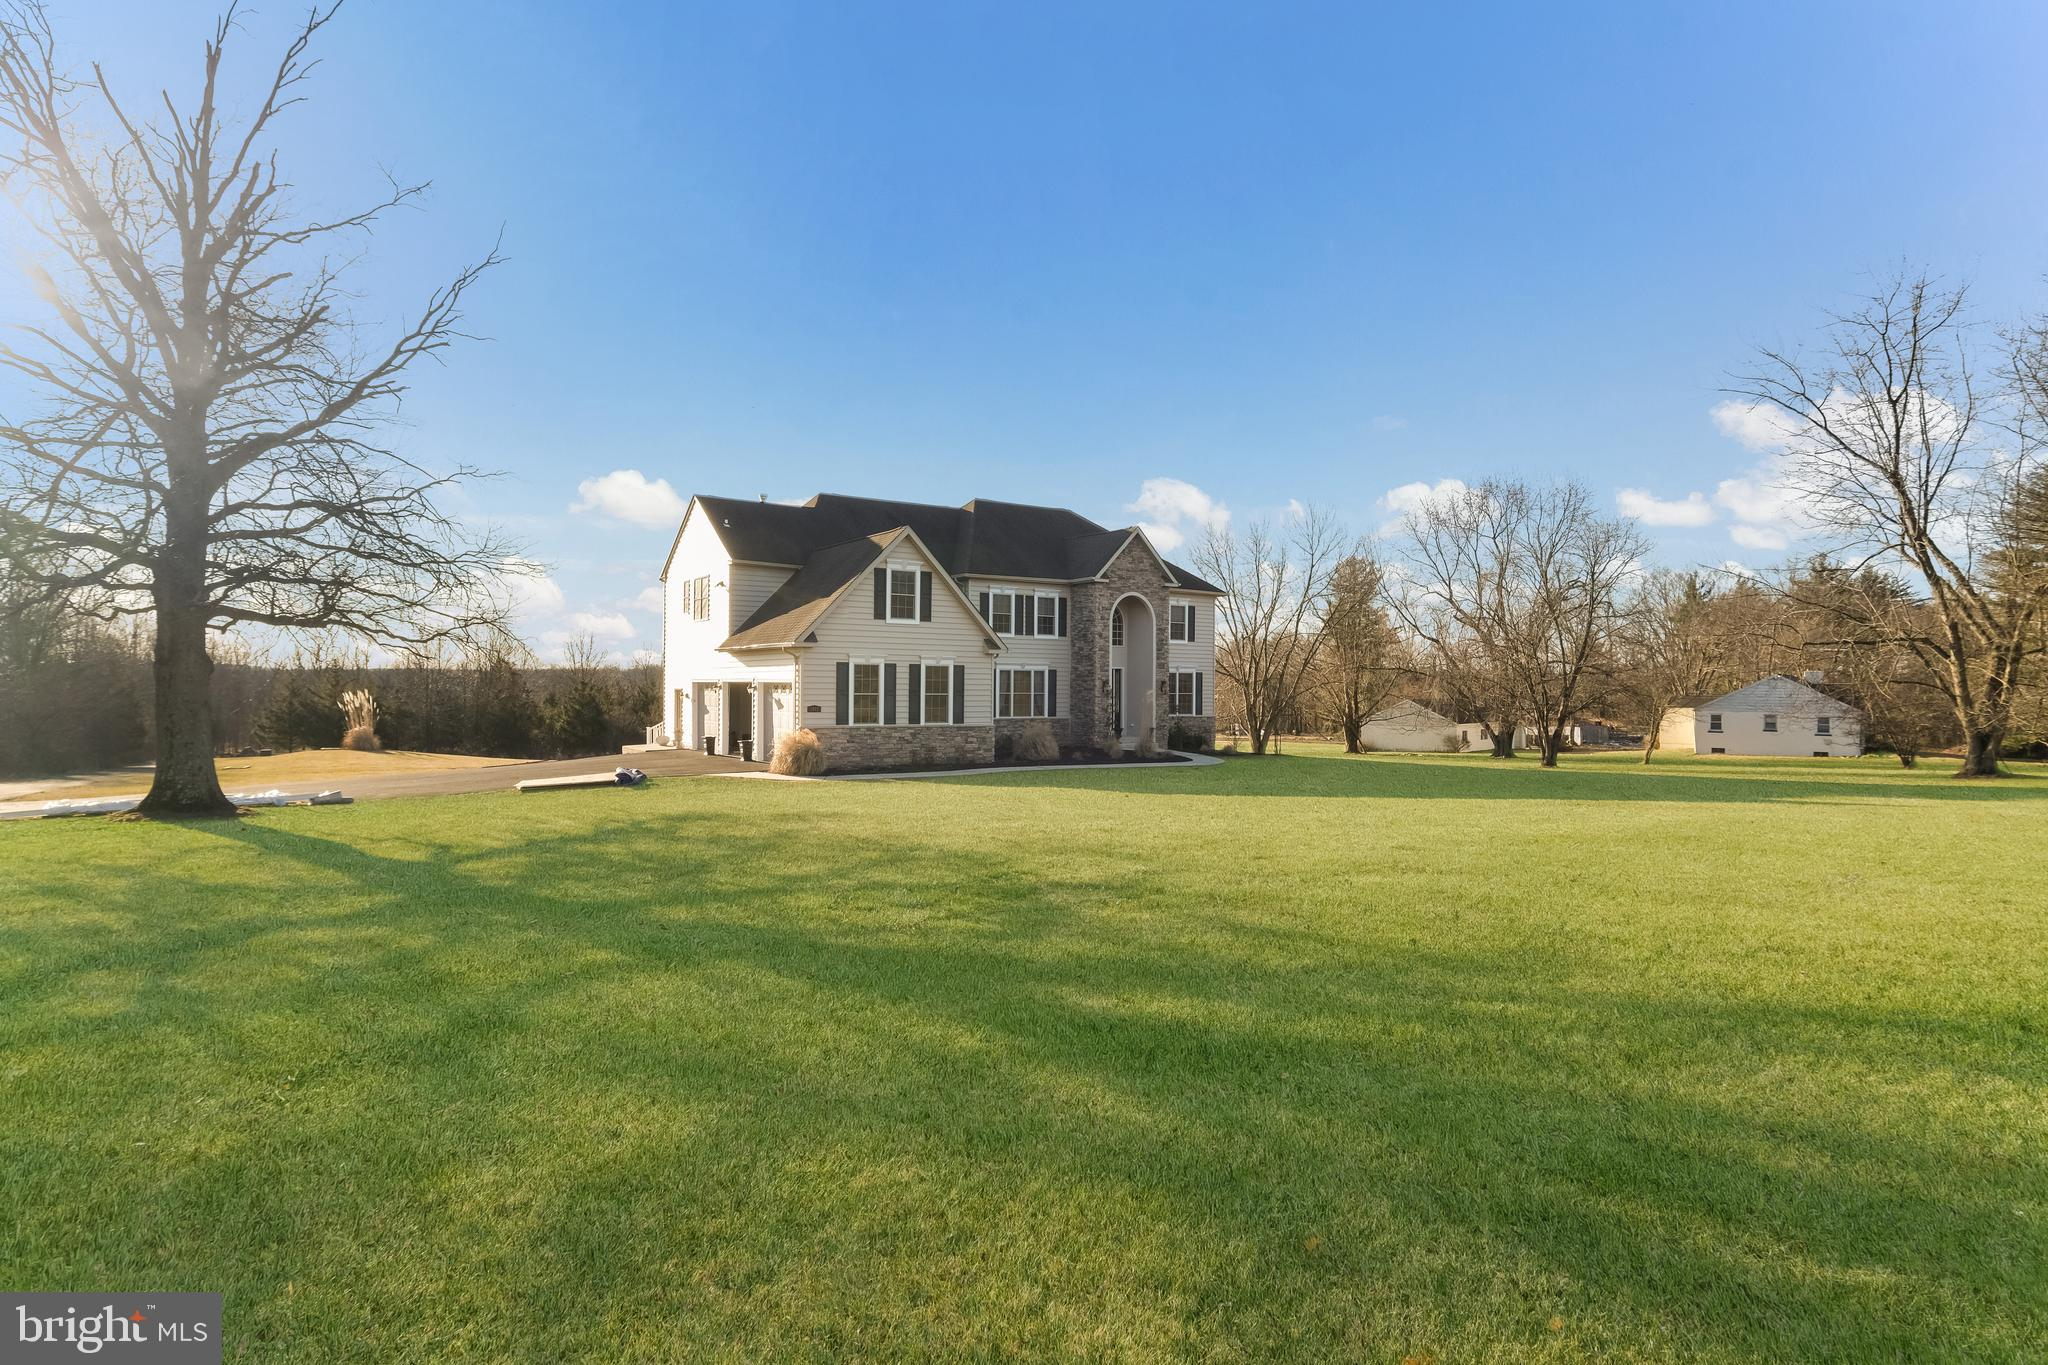 1657 MEETINGHOUSE ROAD, WARMINSTER, PA 18974